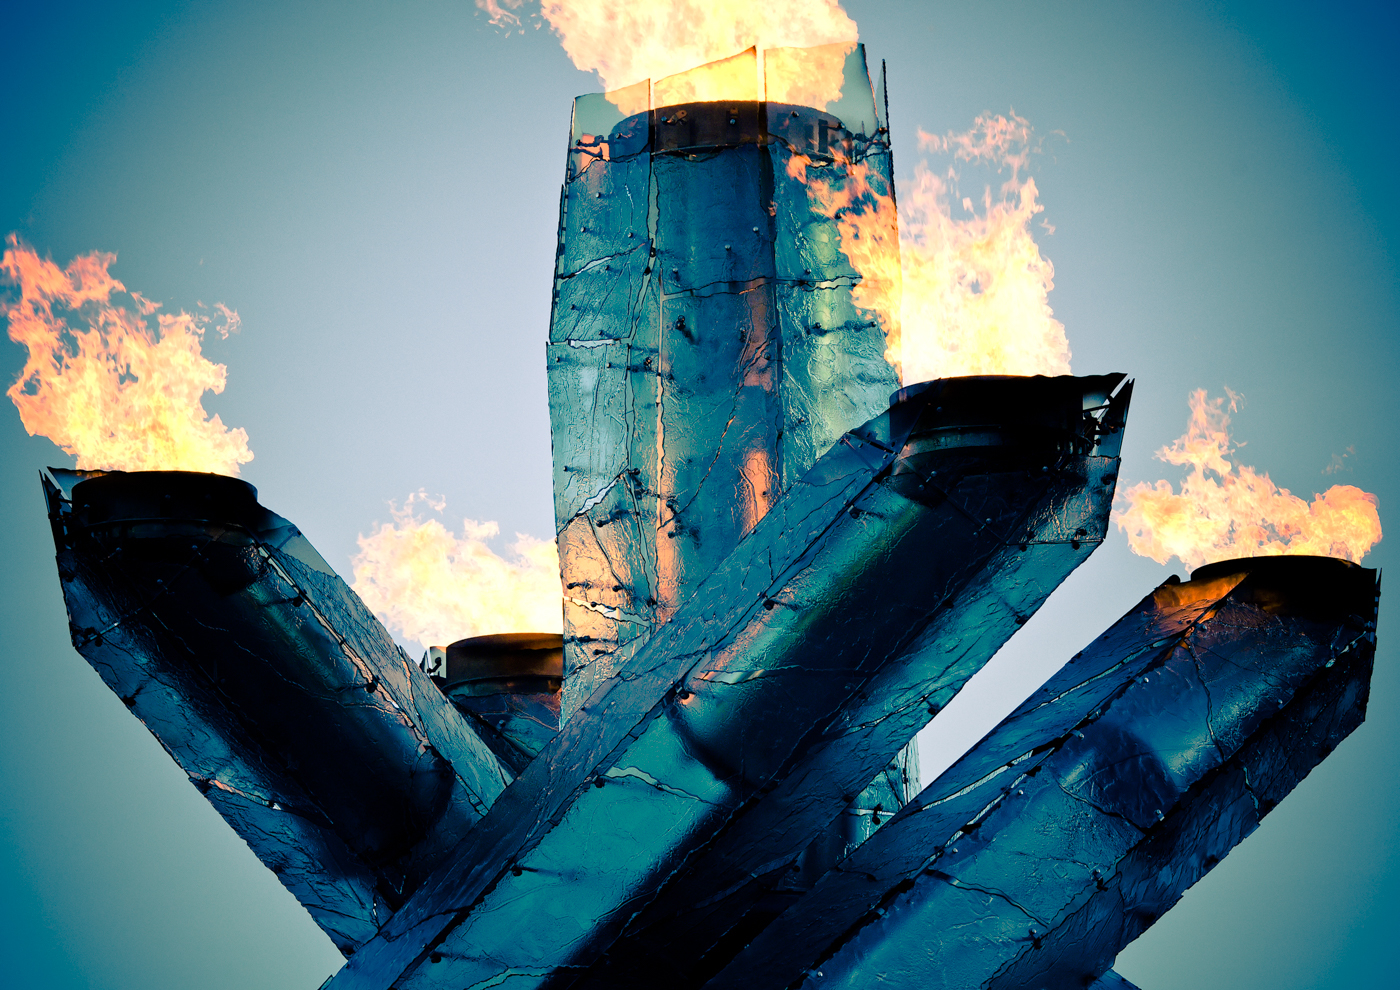 2010 Vancouver Winter Olympics, Cauldron Lit